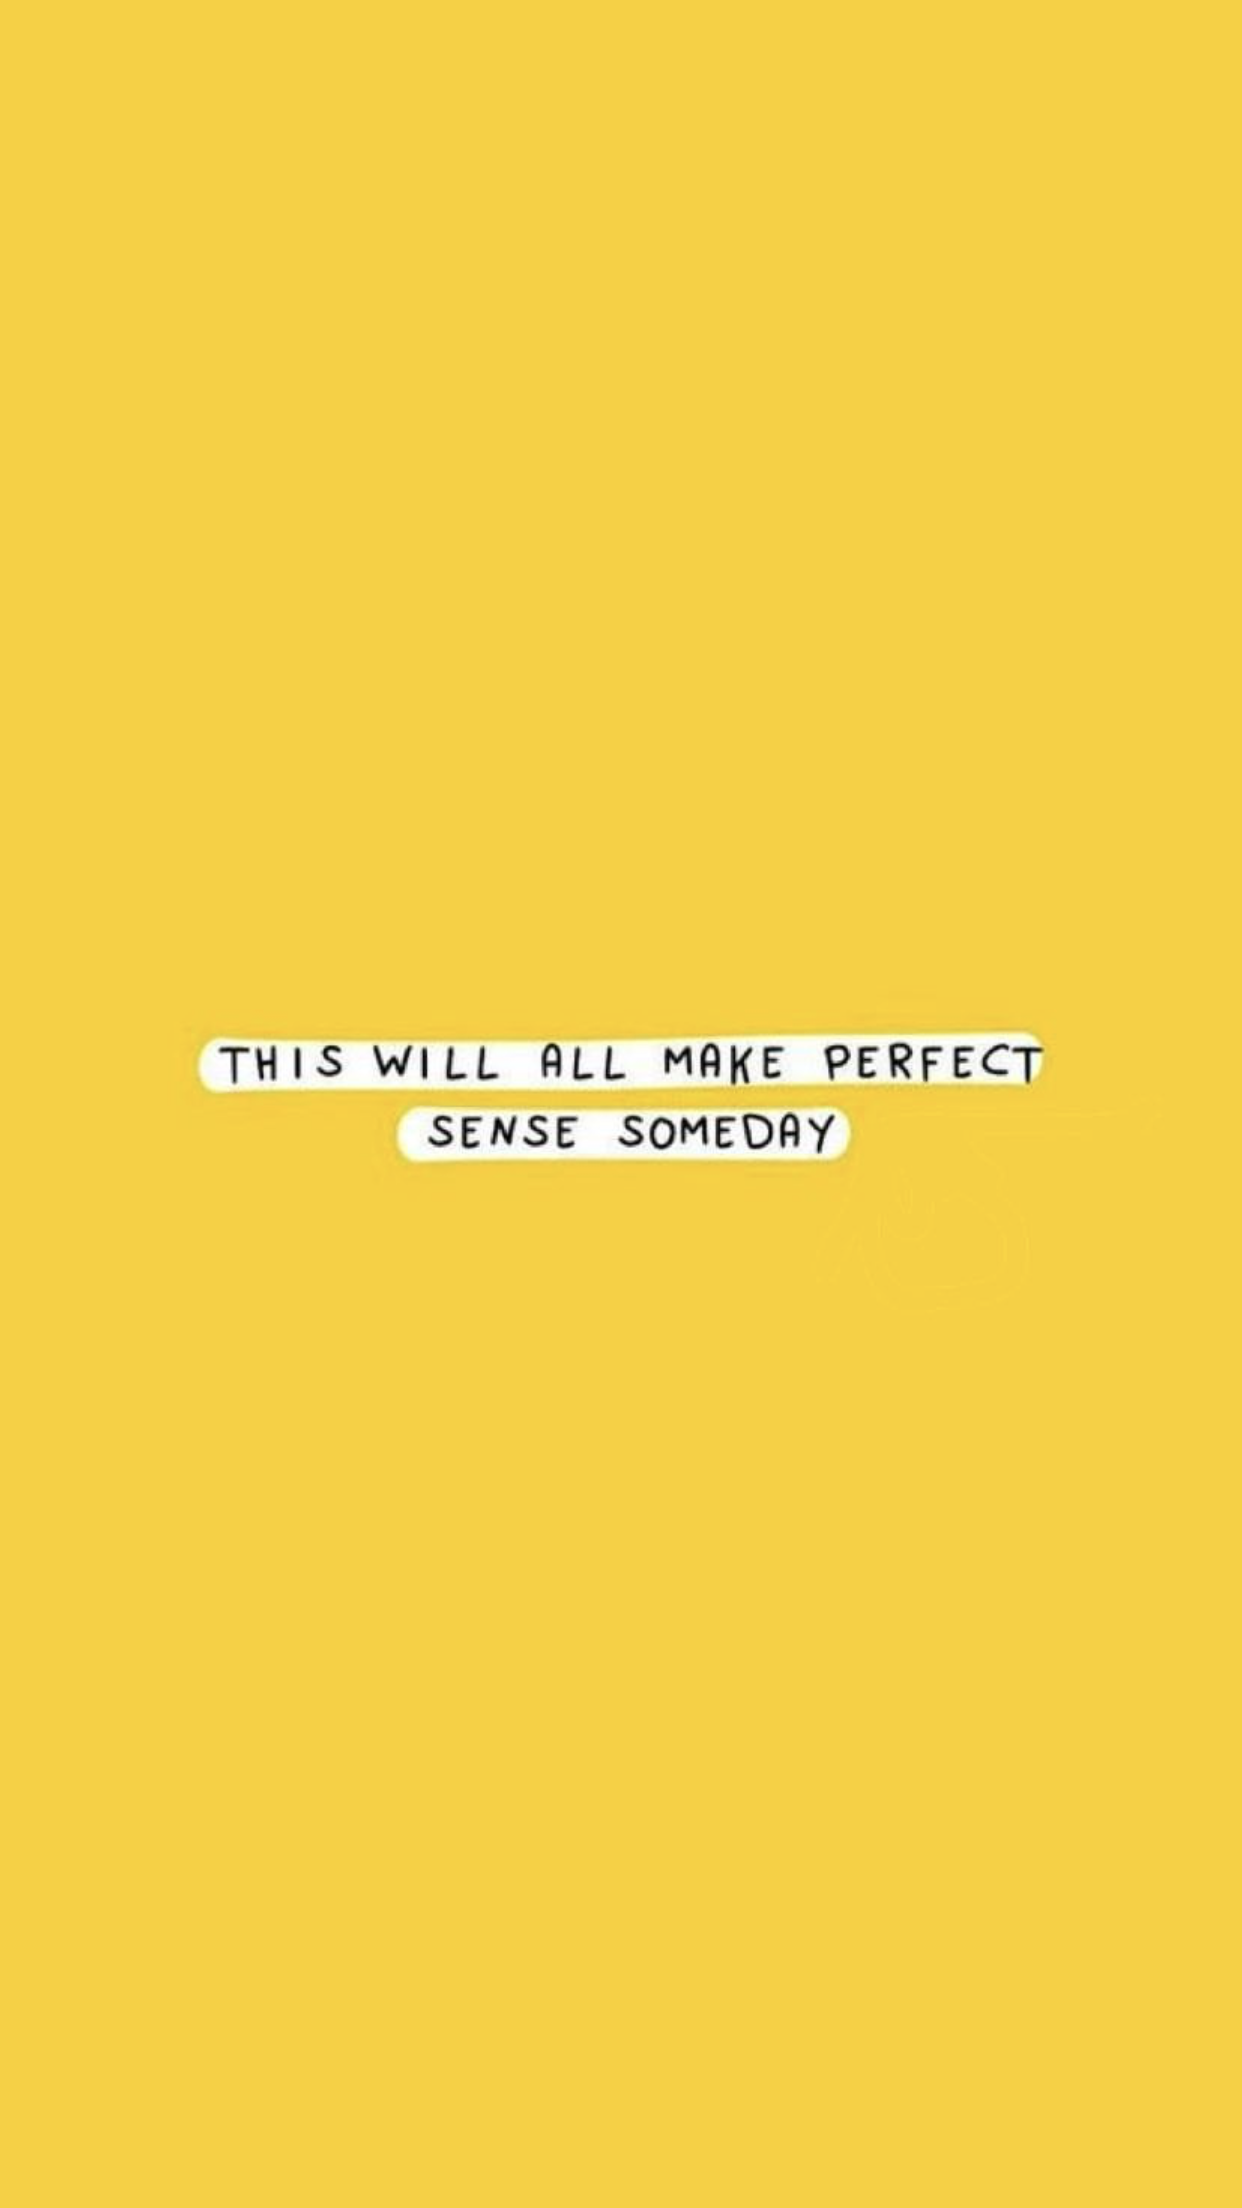 Pin by ❁ ava ❁ on yellow  wallpaper quotes, quotes, yellow